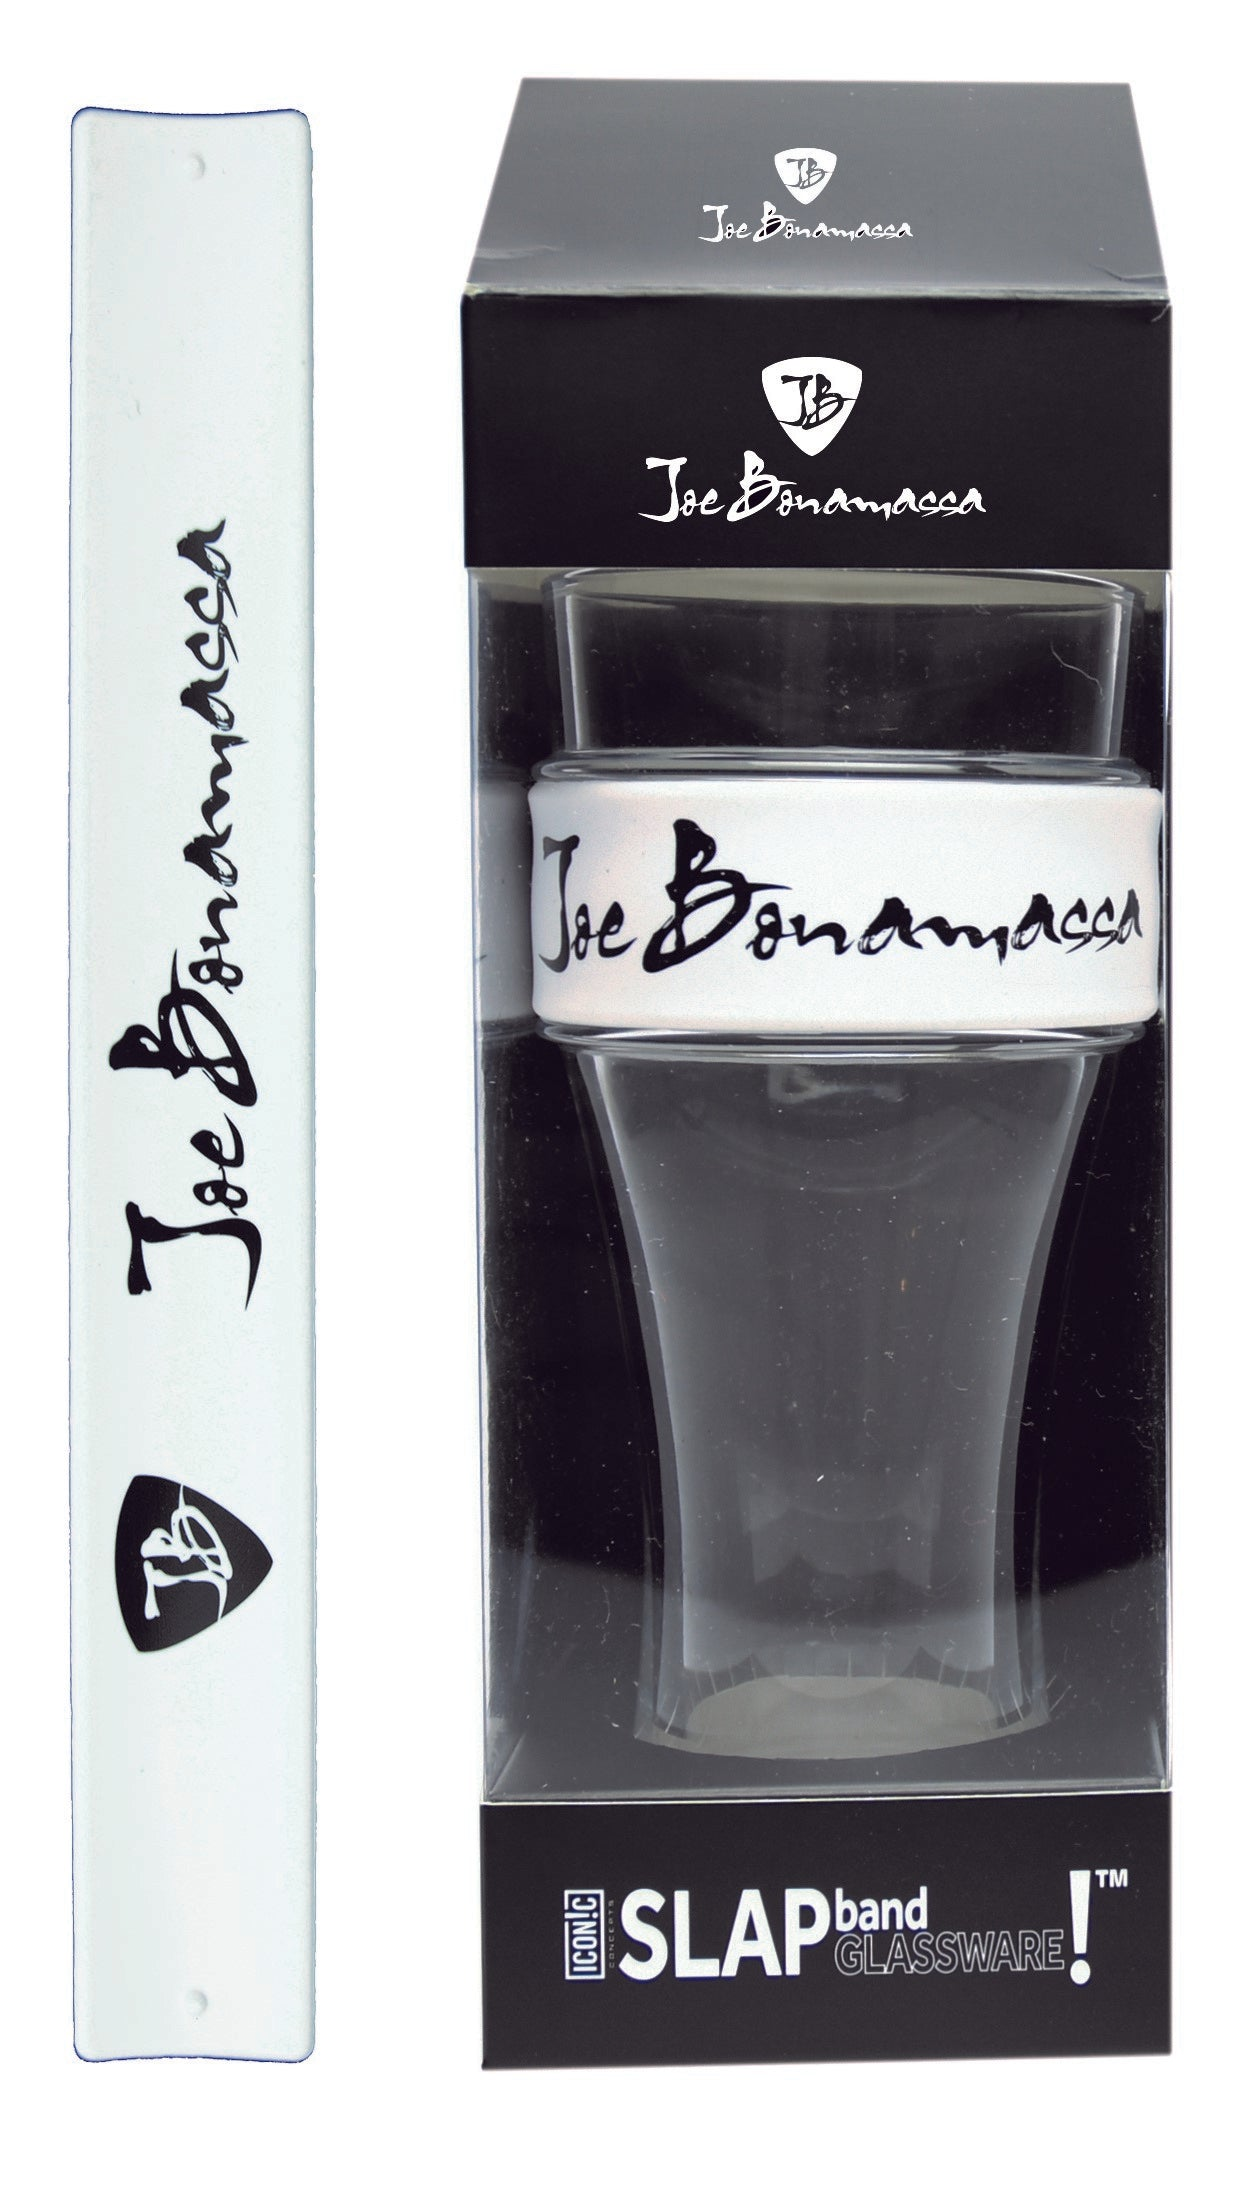 Joe Bonamassa - Slap Band Glassware - Single Pack with Slap Band Joe Bonamassa White Band/Black Logo